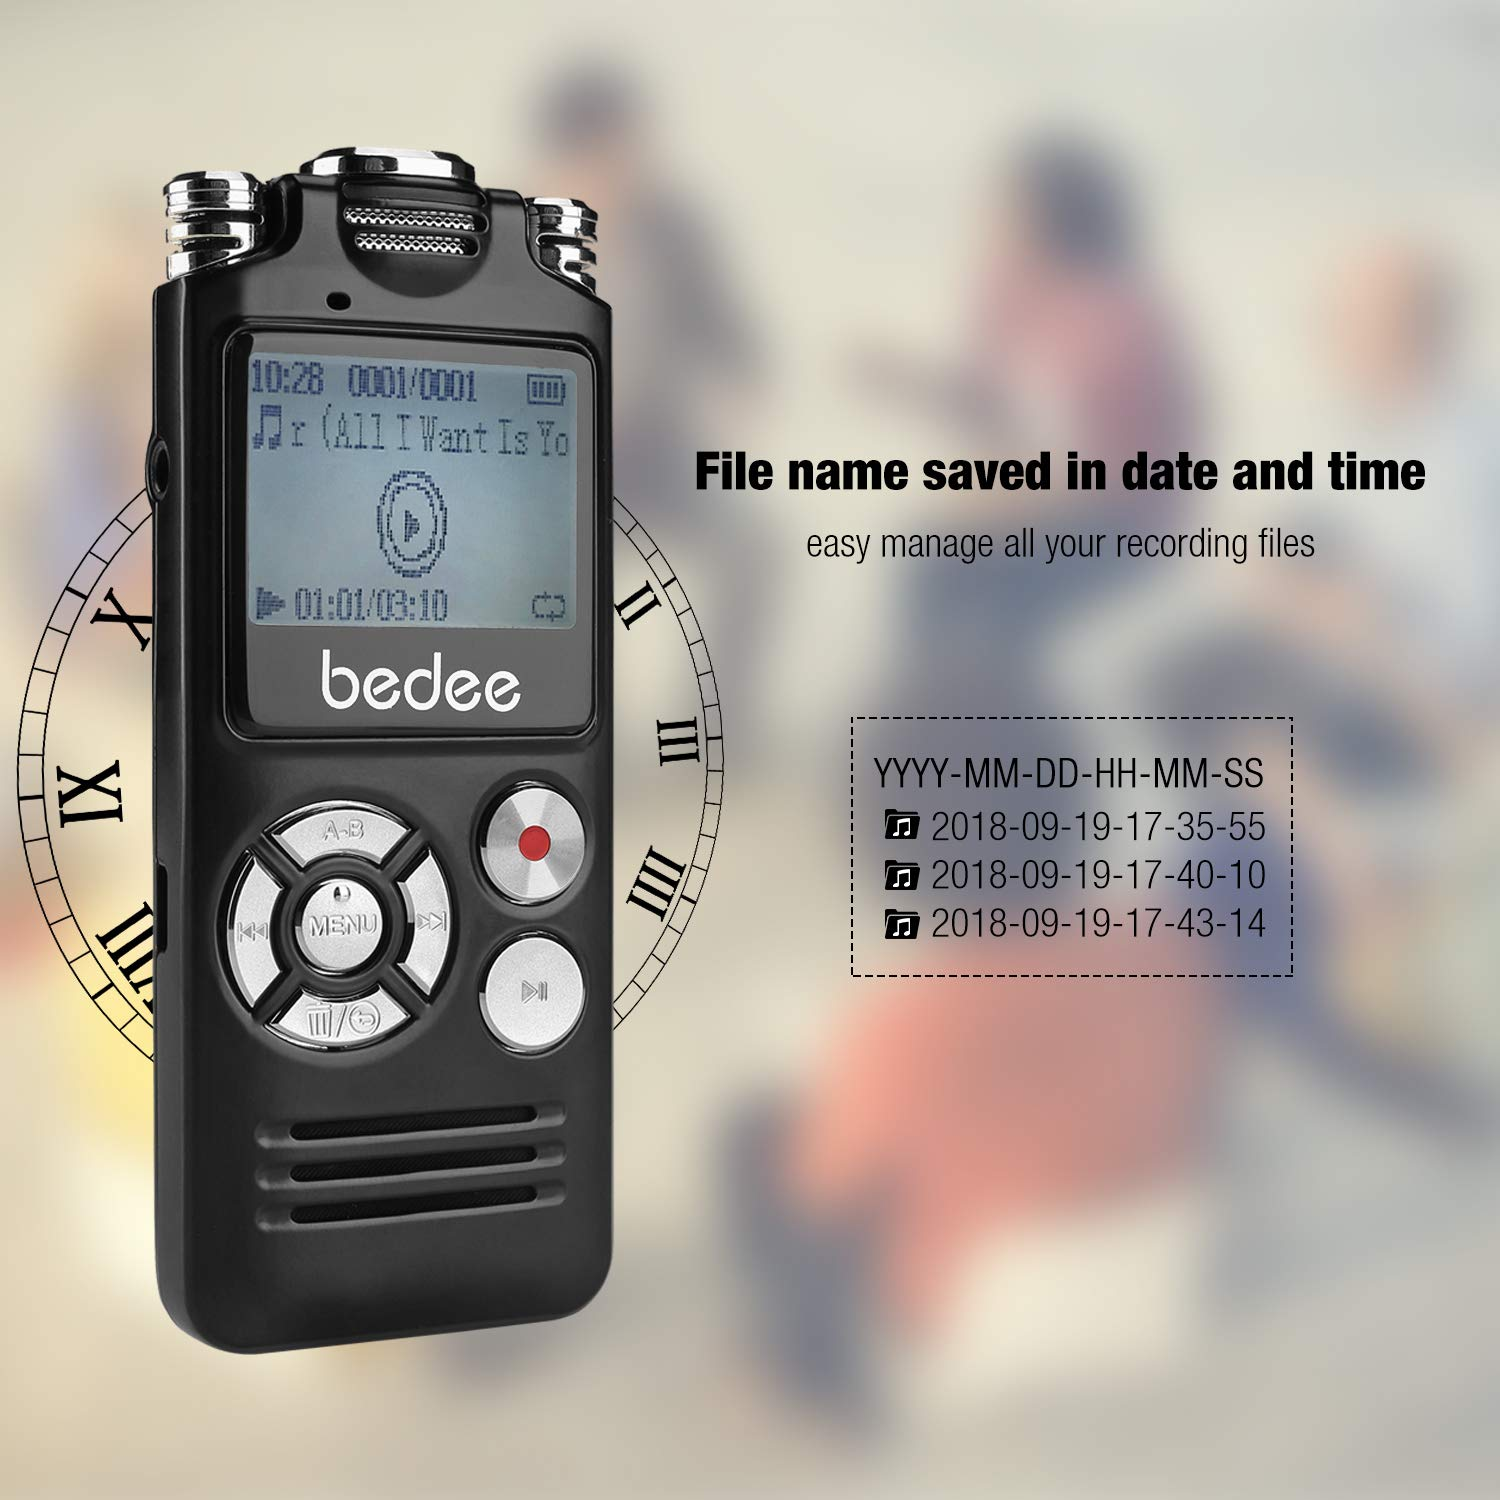 Voice Recorder bedee Audio Recorder Voice Activated Digital Voice Recorder Small Dictaphone Recording Device 8GB Memory 1536kbps/10 Hrs Storage Capacity with 2 Clear Microphone for Interviews Lectures Class Meetings Concert Conference